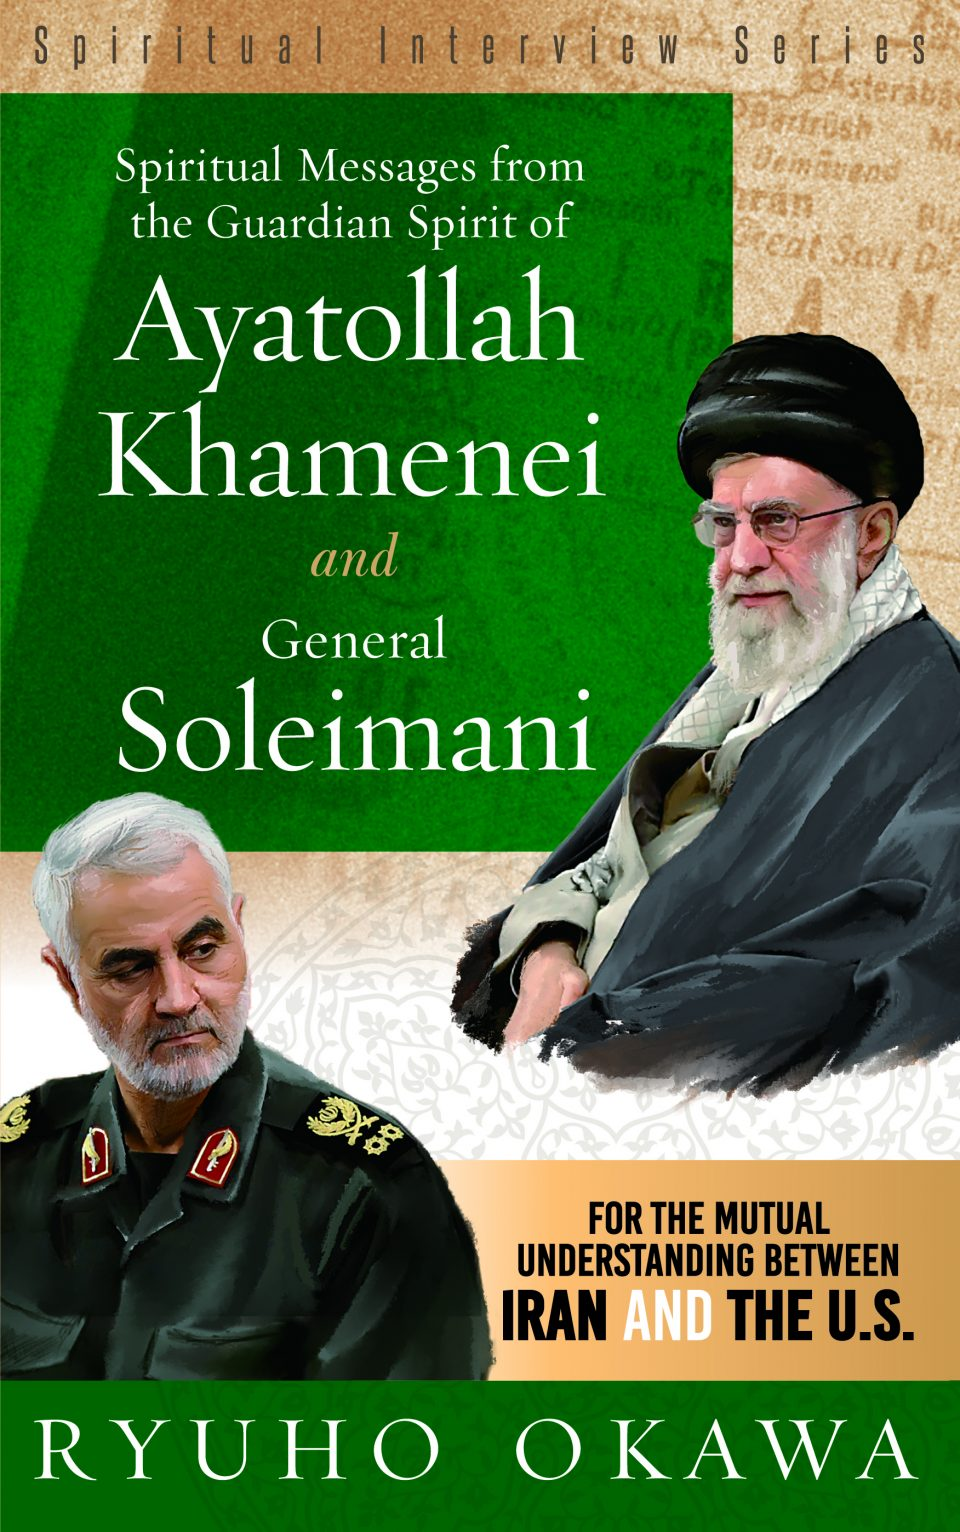 Spiritual Messages from the Guardian Spirit of Ayatollah Khamenei and General Soleimani: For the Mutual Understanding between Iran and the U.S. is out now!